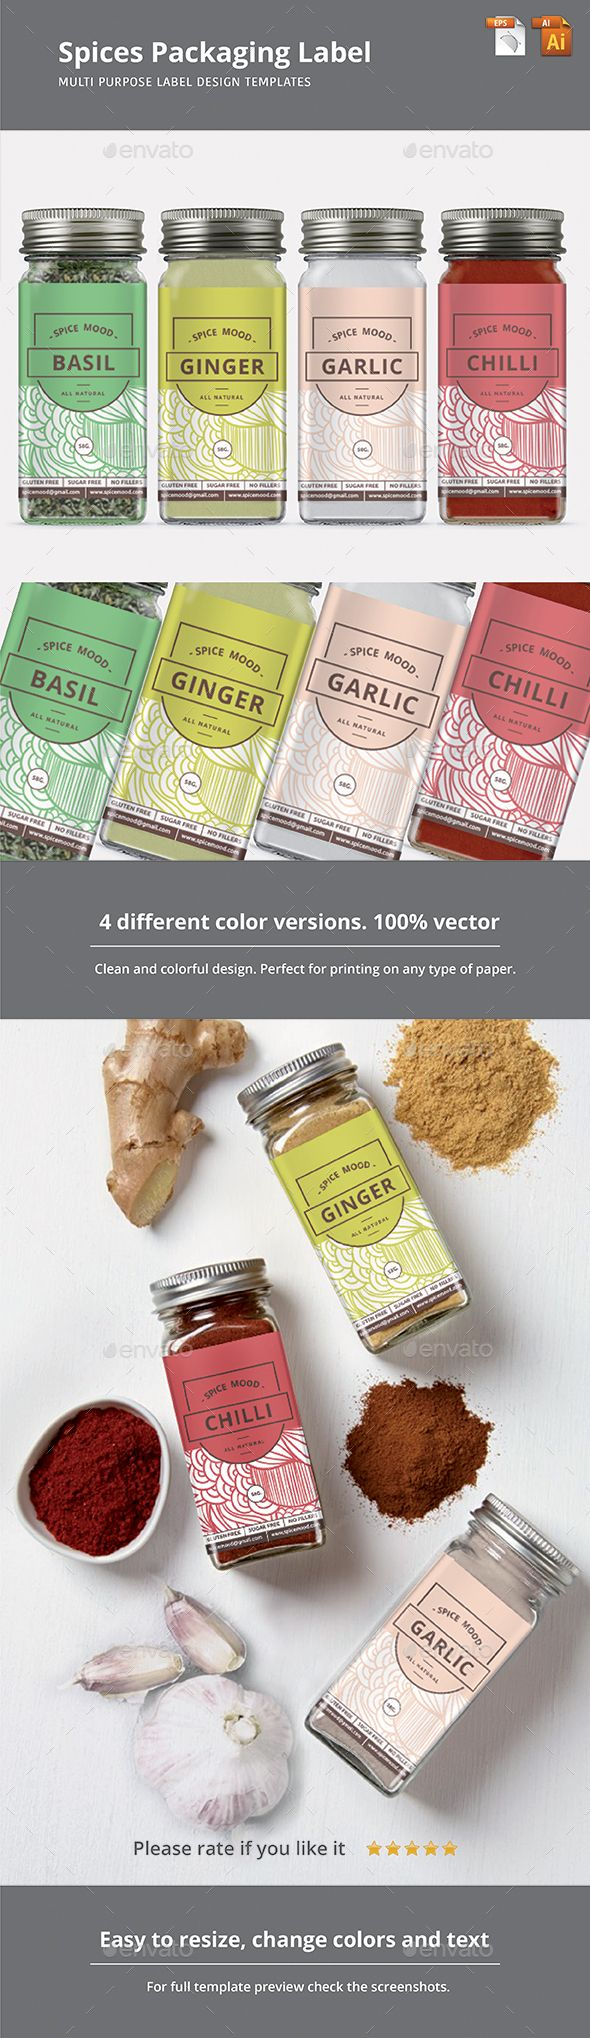 Spices Packaging Label Template Vector EPS, AI Illustrator #design